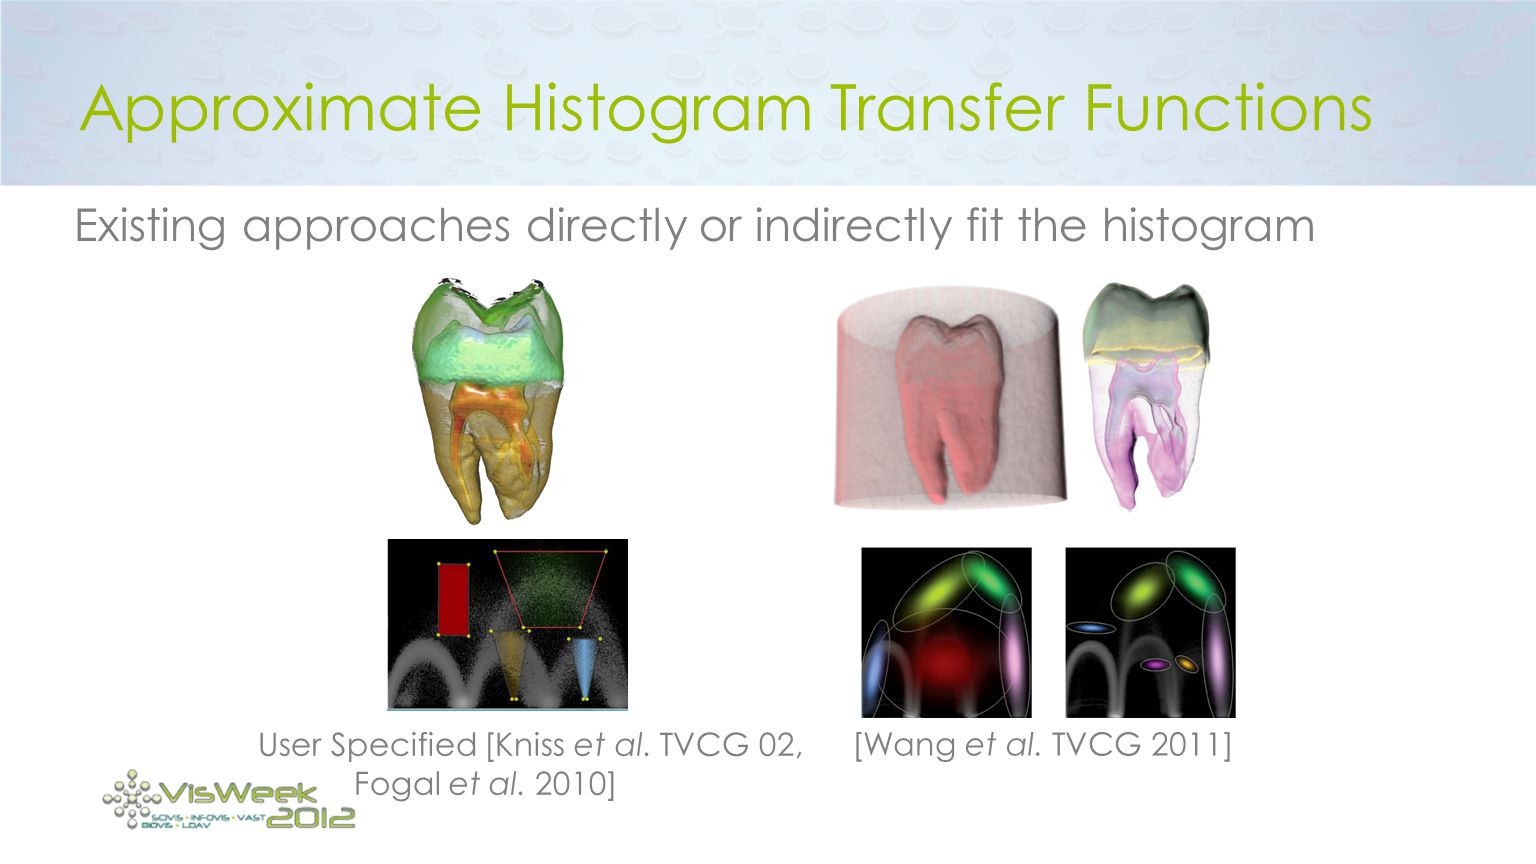 Approximate Histogram Transfer Functions